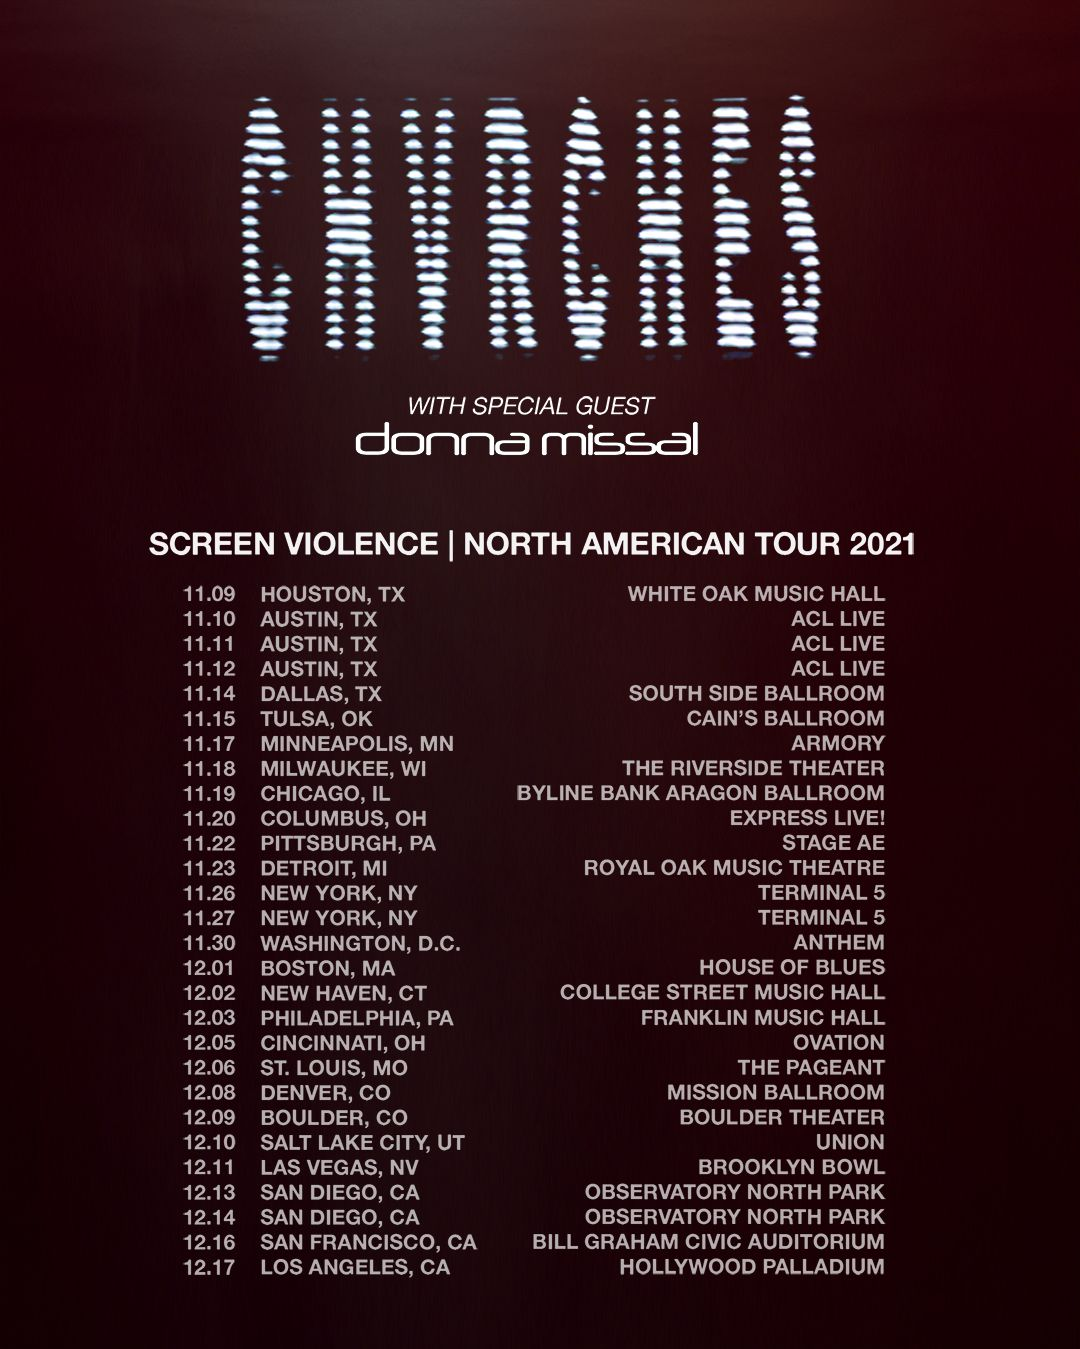 NEW ALBUM 'SCREEN VIOLENCE' AND NORTH AMERICAN TOUR ANNOUNCED BY CHVRCHES